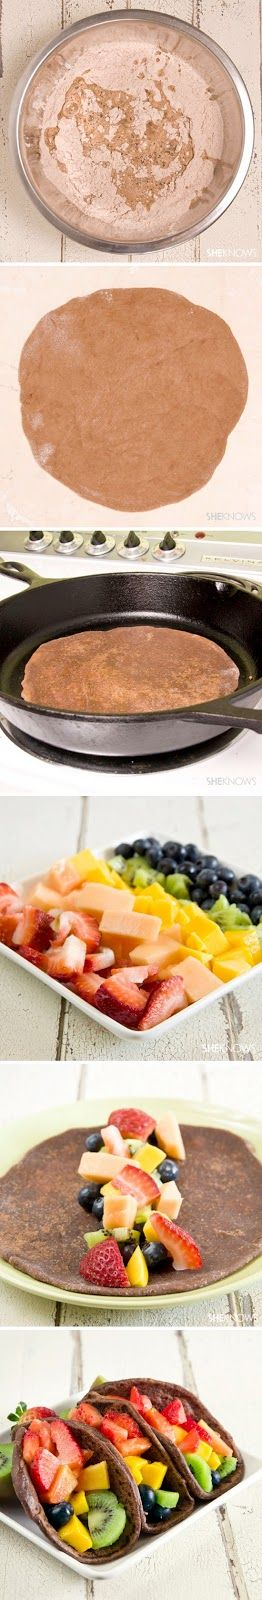 Fruit Tacos With Chocolate Torillas